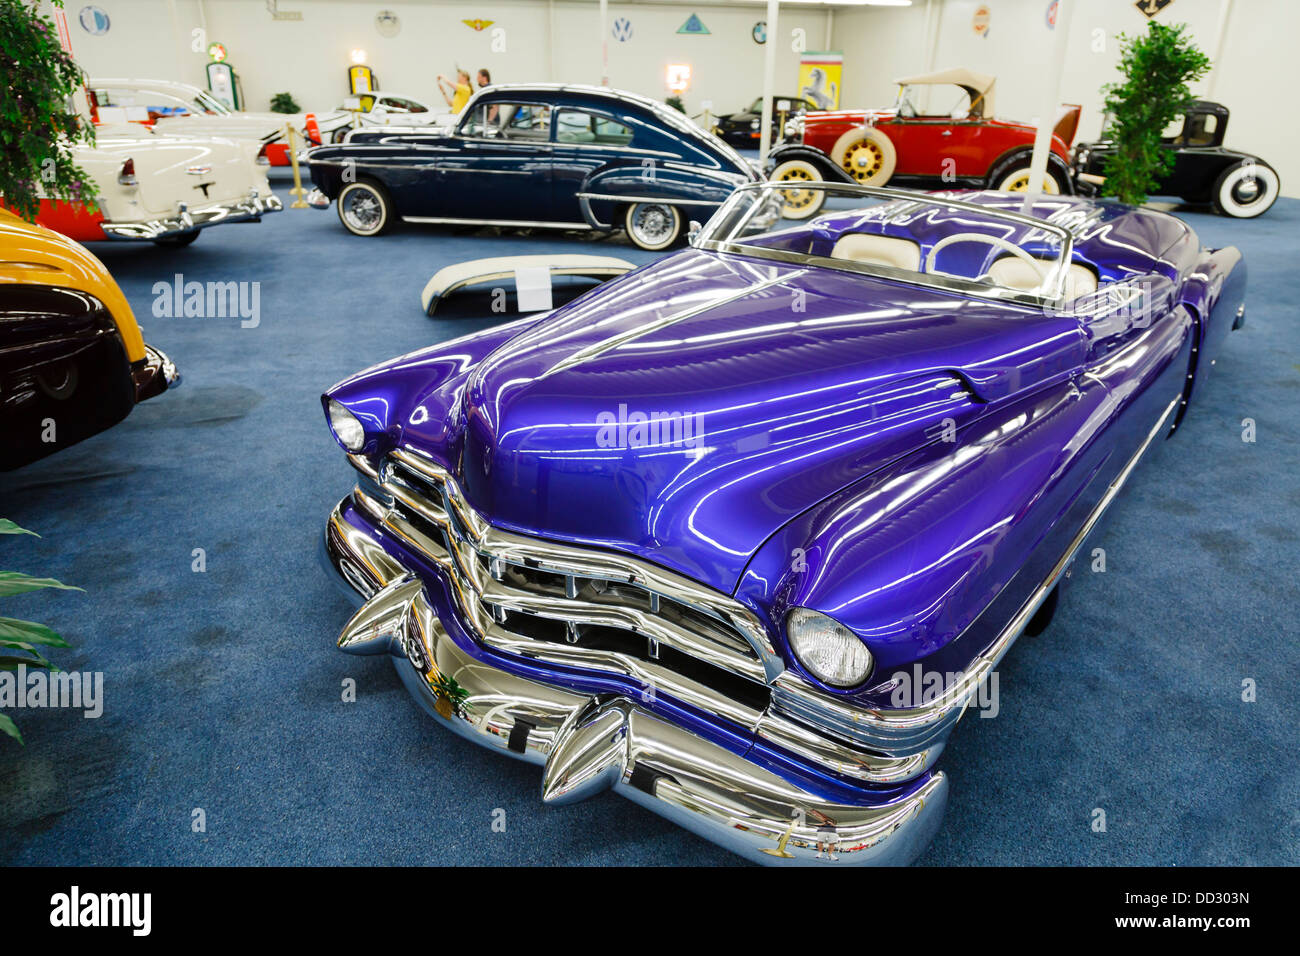 Classic cars at the Auto collections, Imperial Palace Hotel Las Vegas - Stock Image